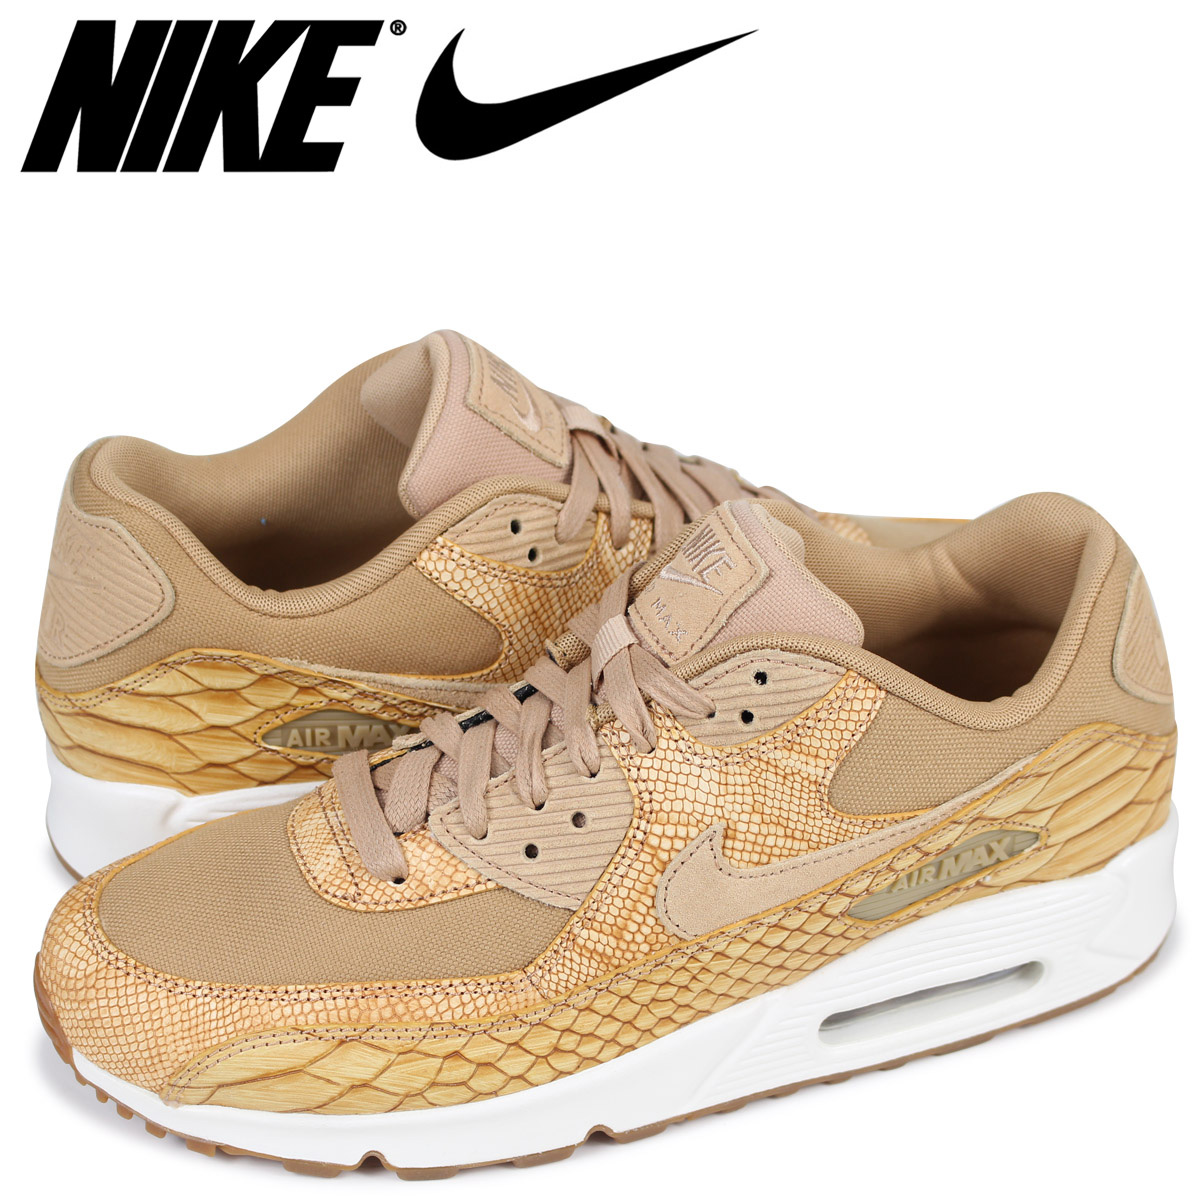 cheaper a7e15 25897 Nike NIKE Air Max 90 sneakers men AIR MAX 90 PREMIUM LEATHER AH8046-200  beige load planned Shinnyu load in reservation product 315 containing